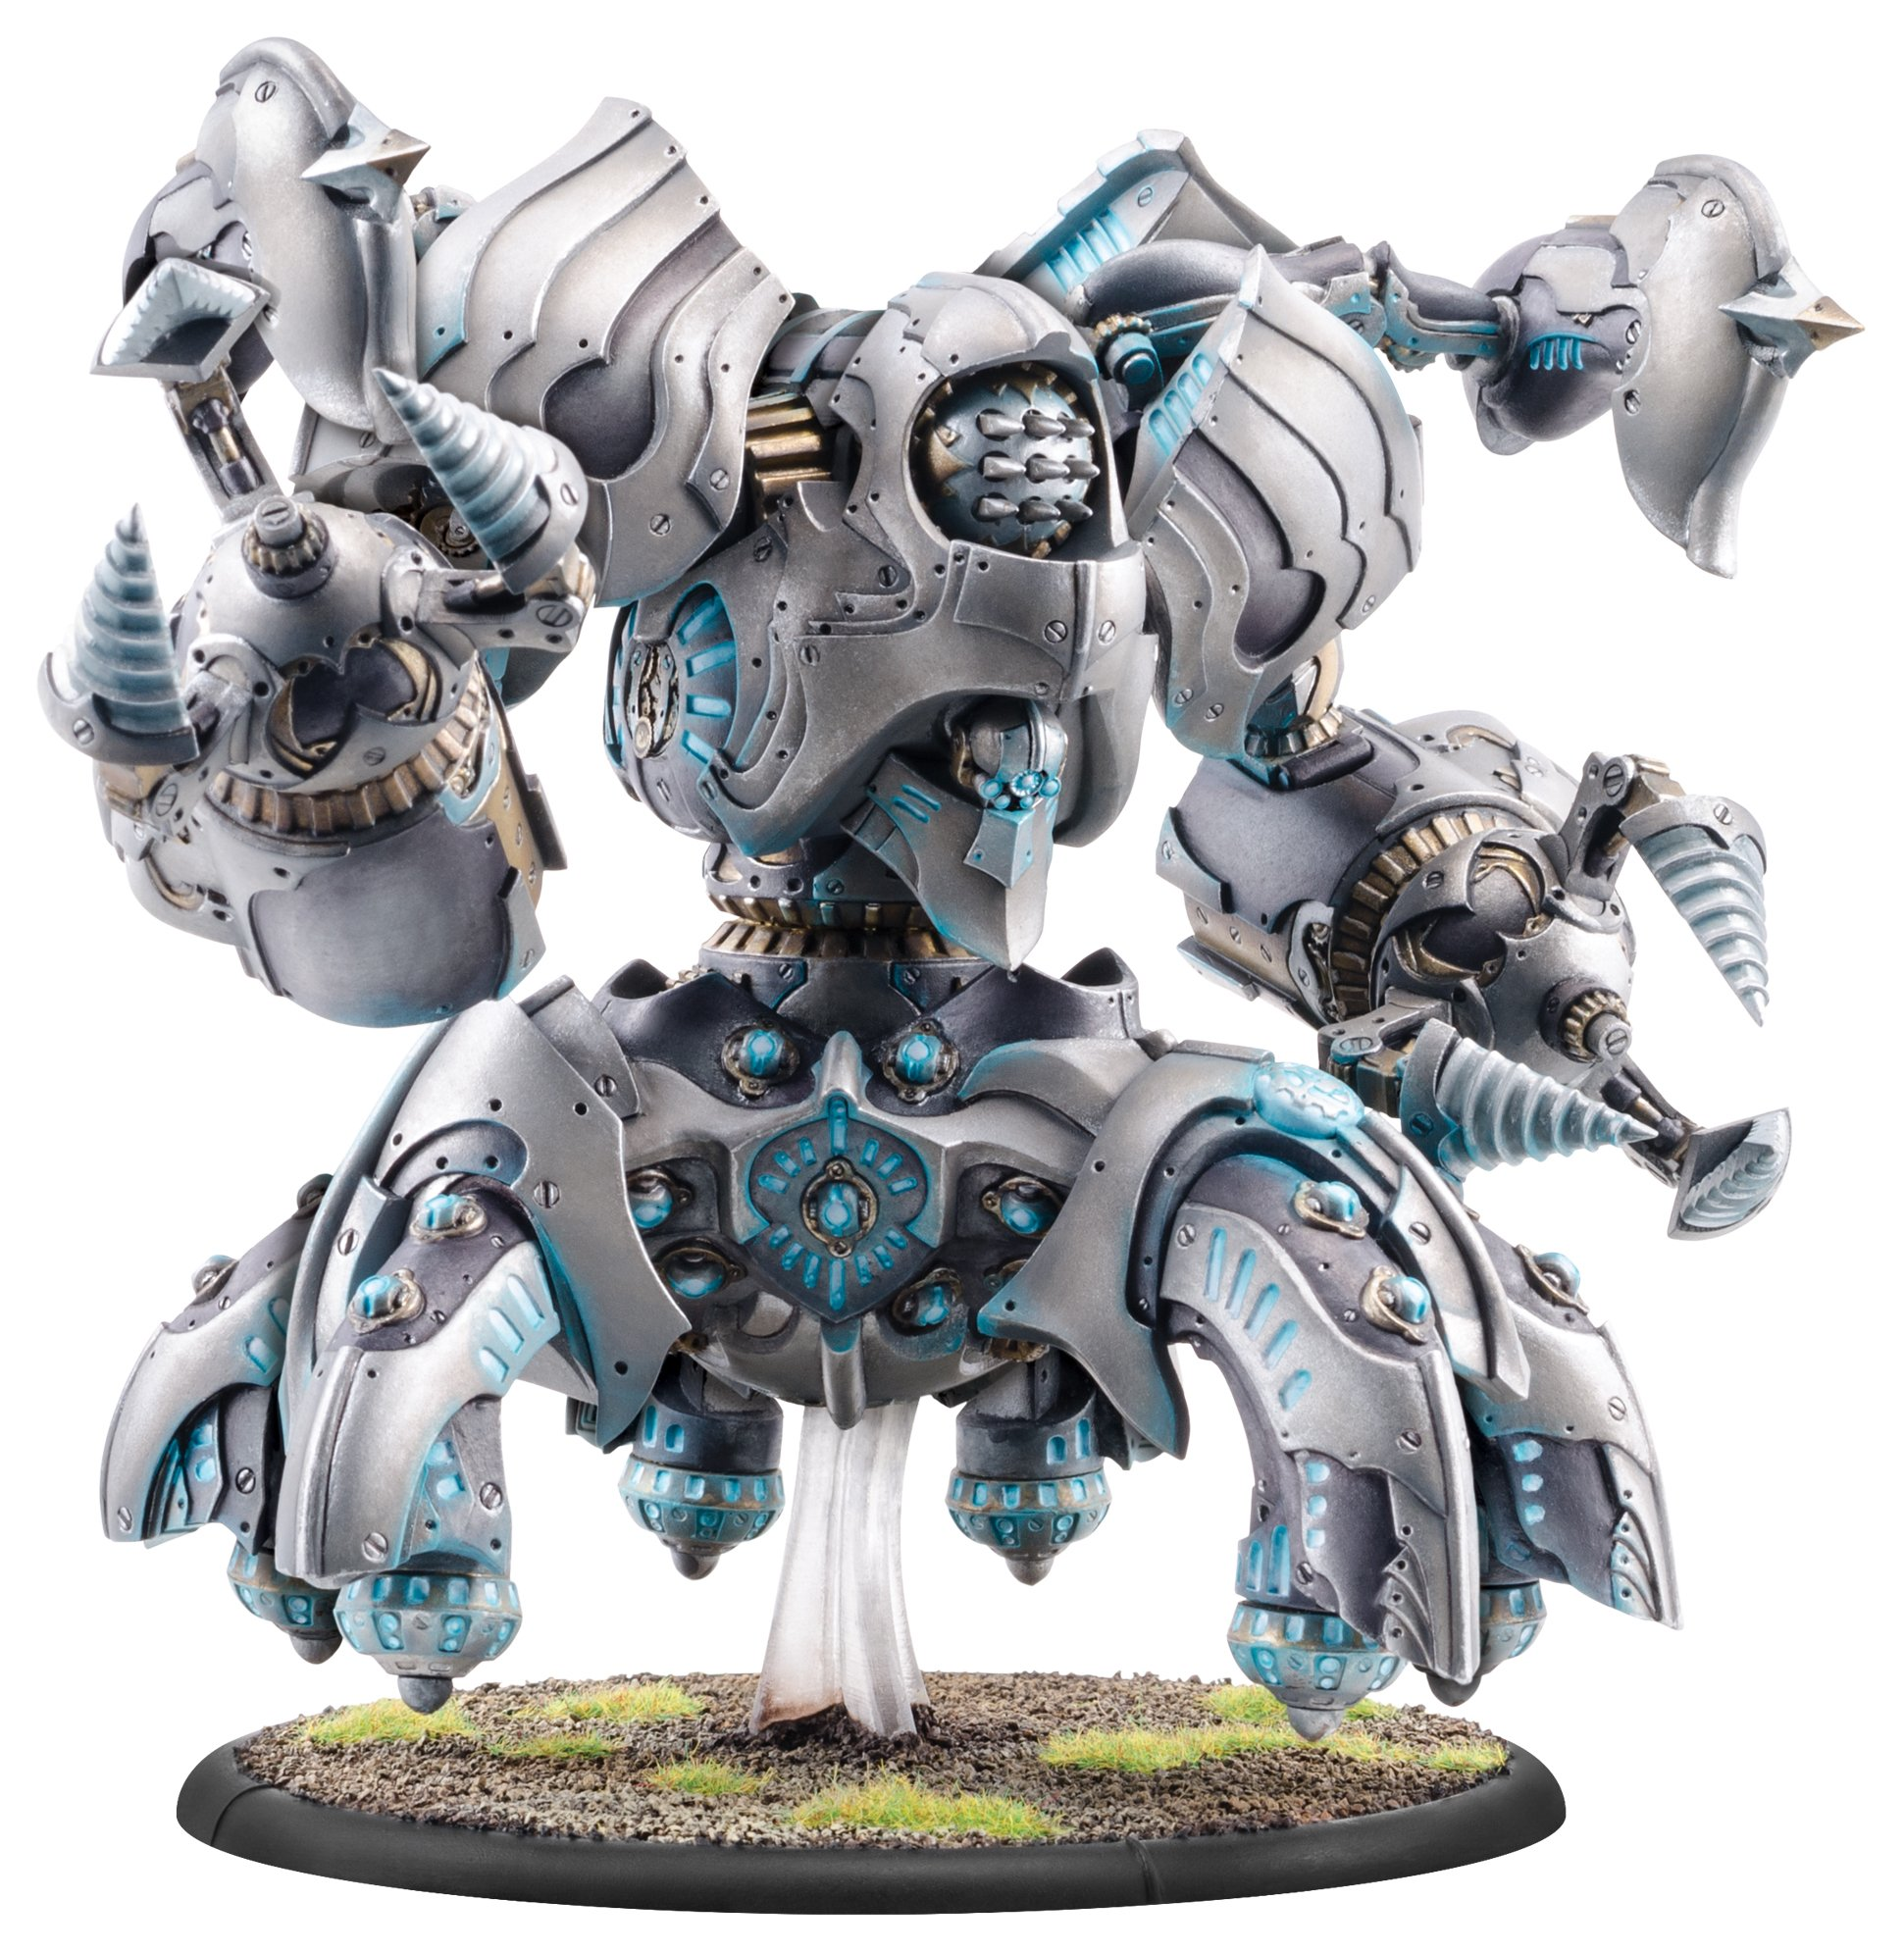 Warmachine Convergence: Prime Axiom / Prime Conflux Colossal by Warmachine